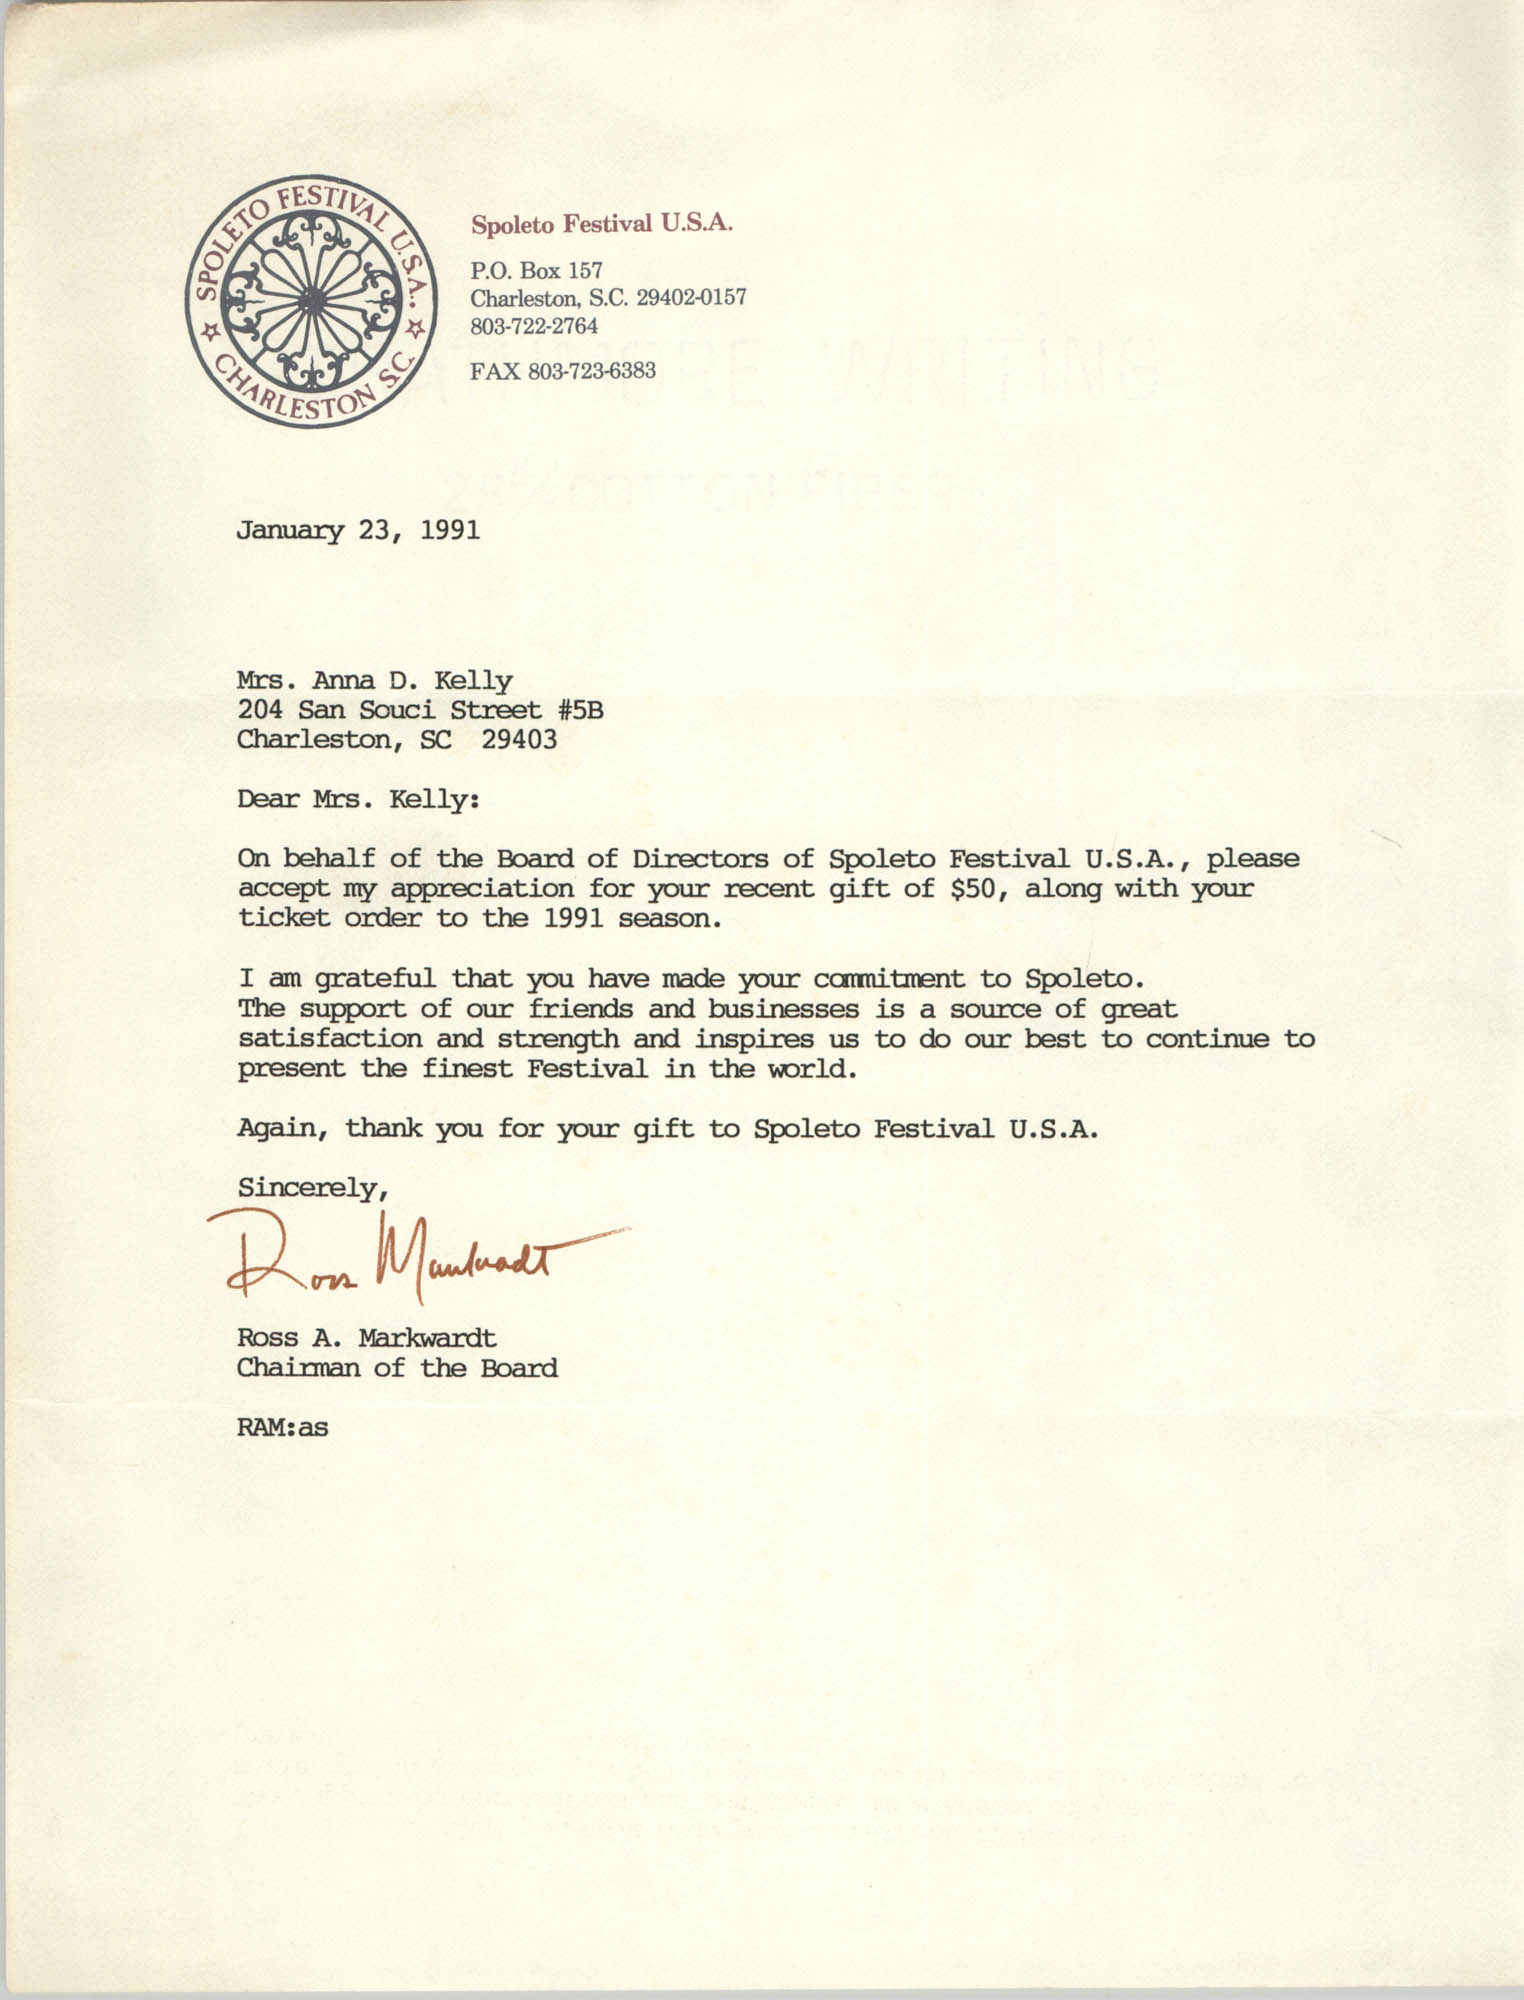 Letter from Ross A. Markwardt to Anna D. Kelly, January 23, 1991